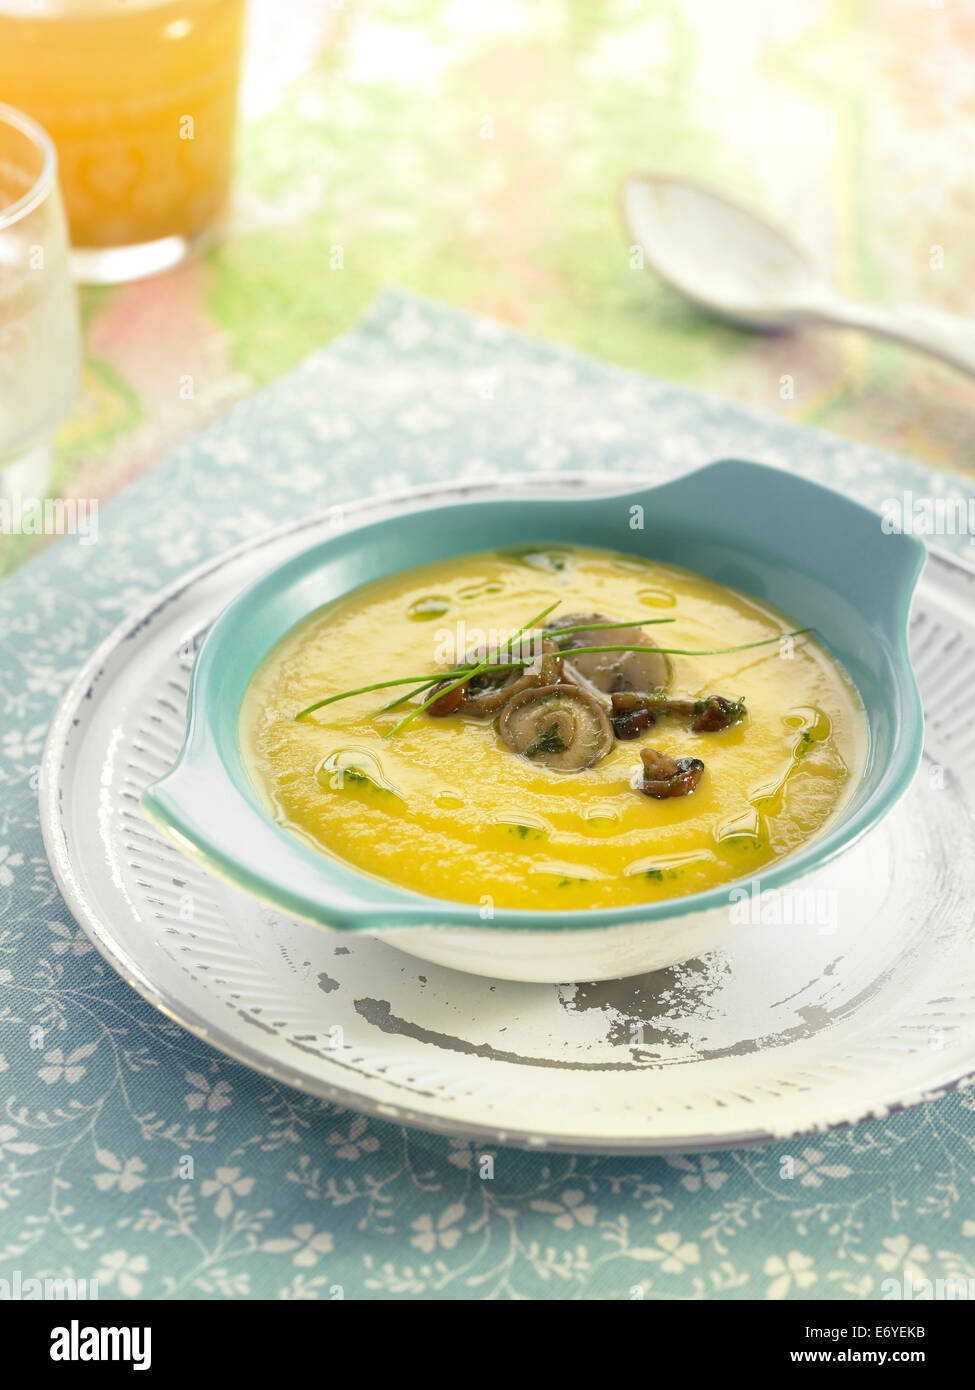 Pureed vegetables with mushrooms - Stock Image